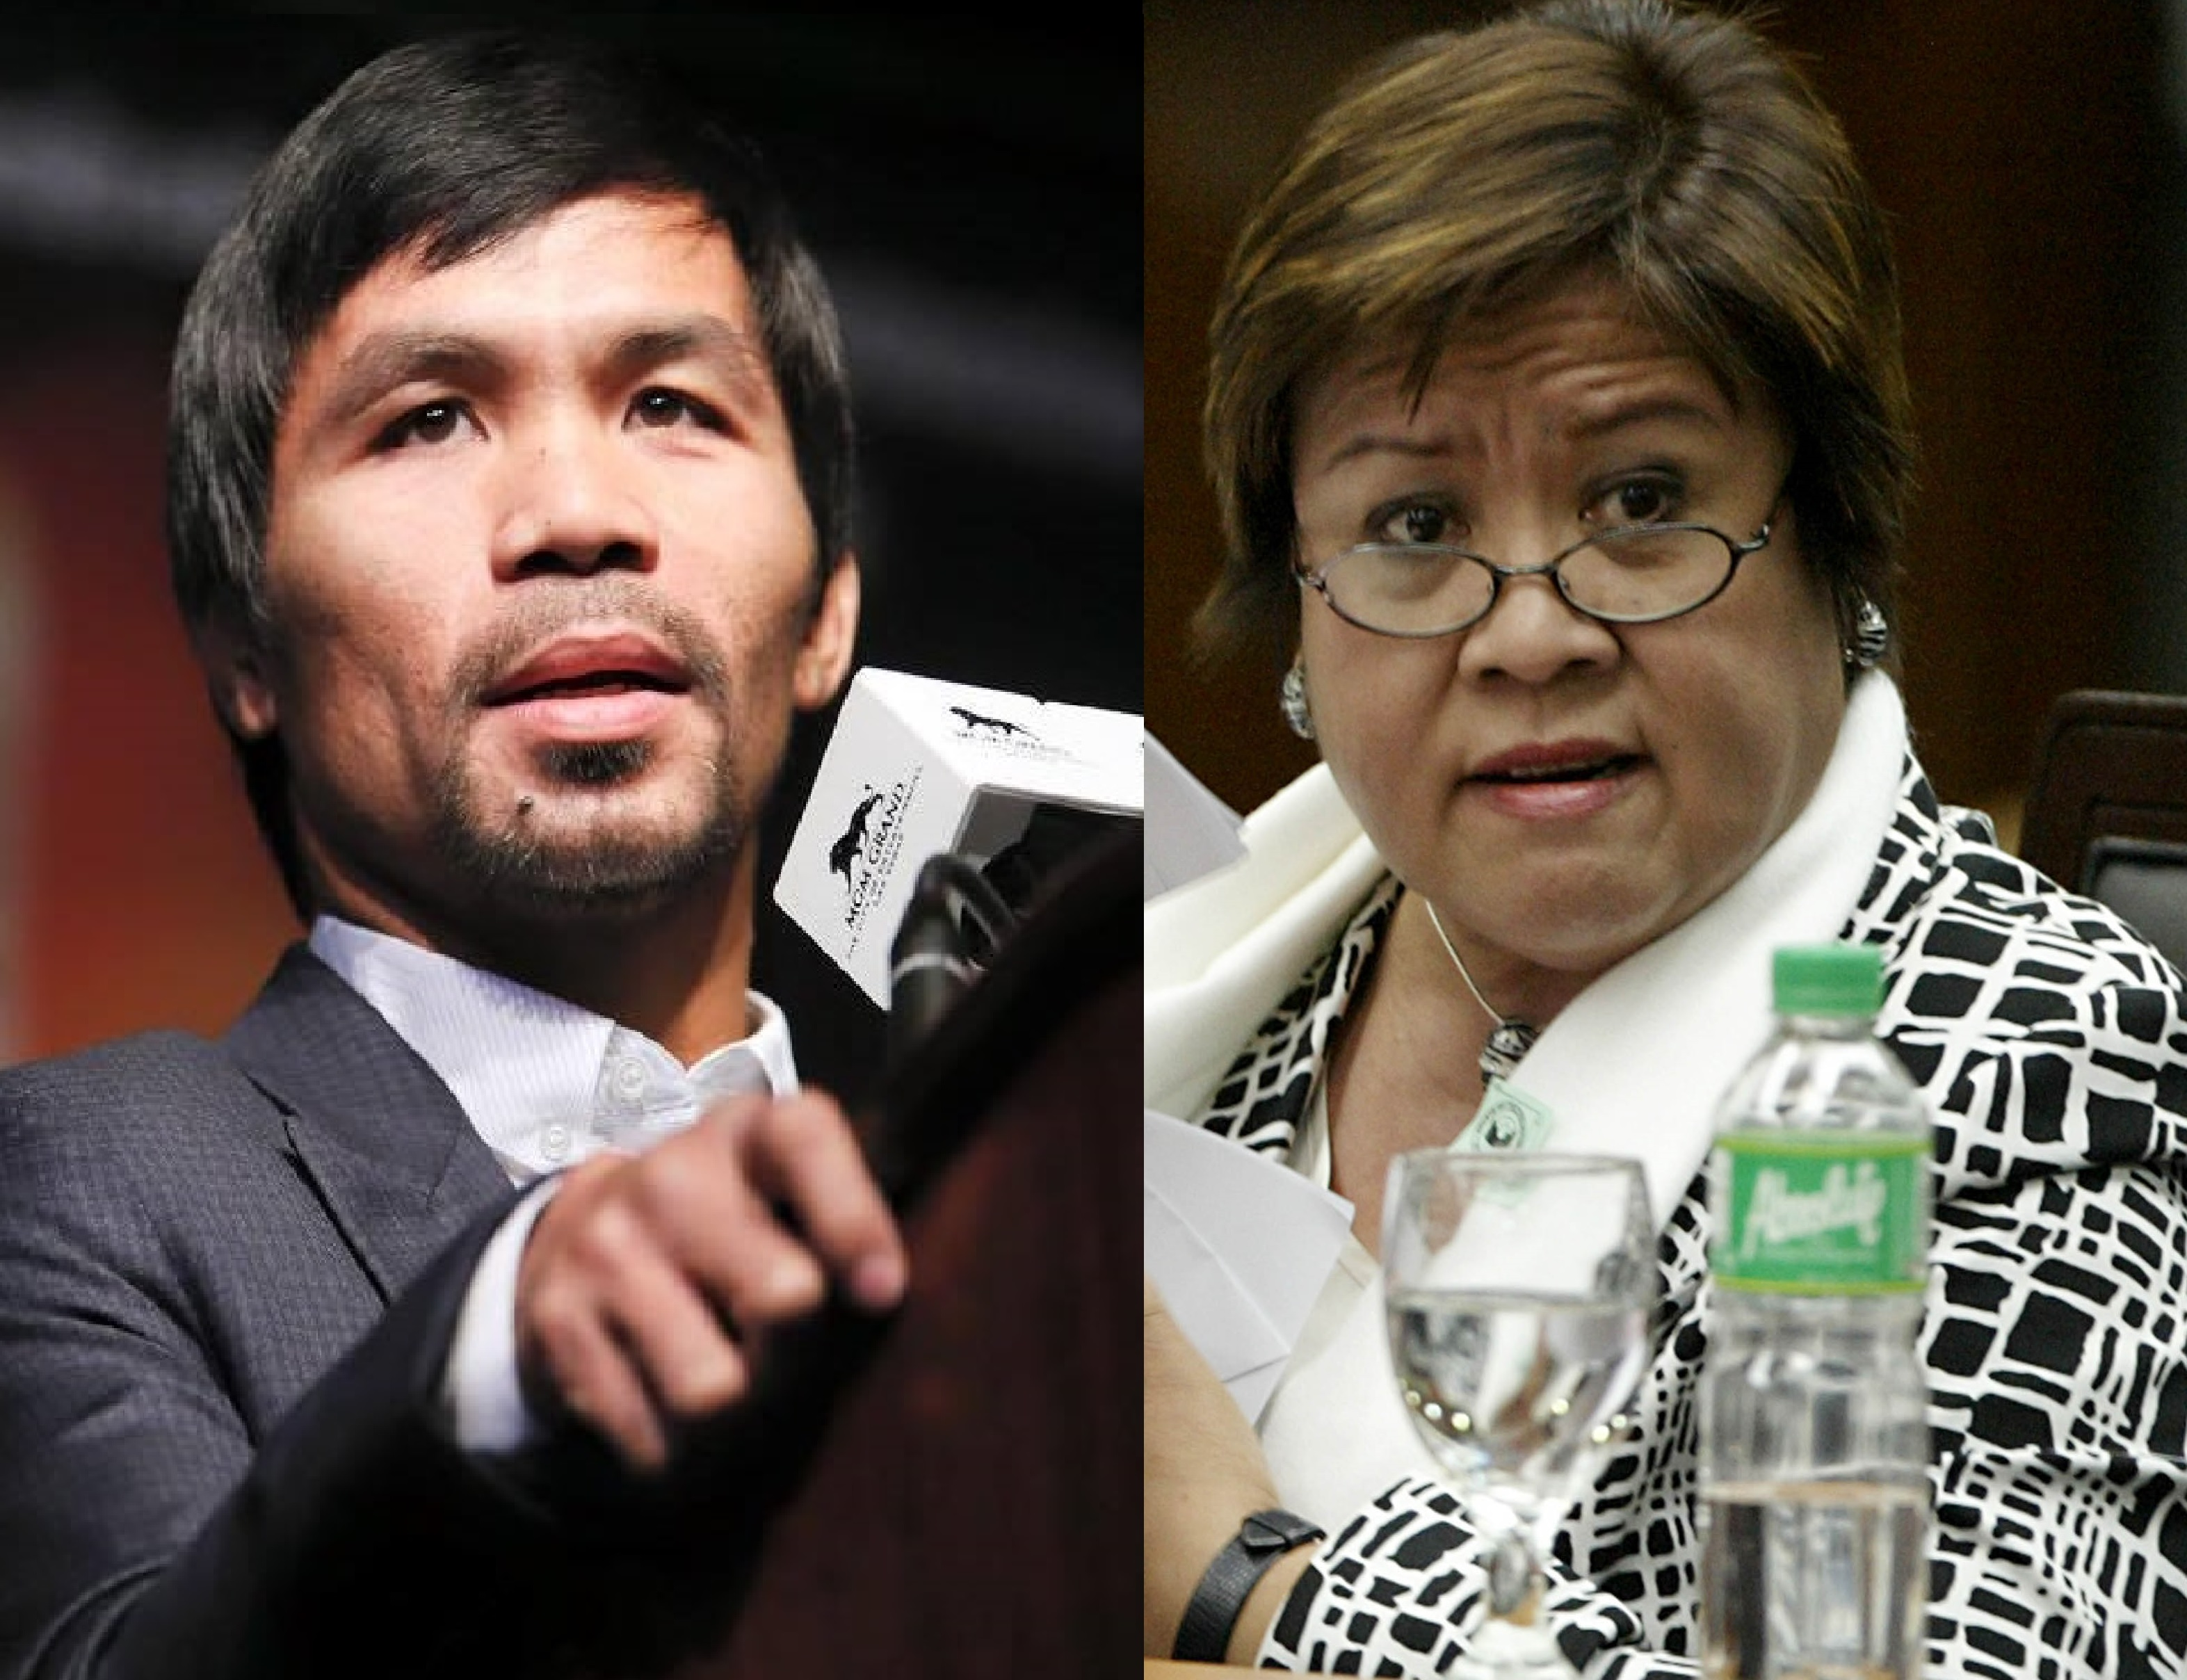 Senators-elect Manny Pacquiao and Leila de Lima. (Facebook photos)